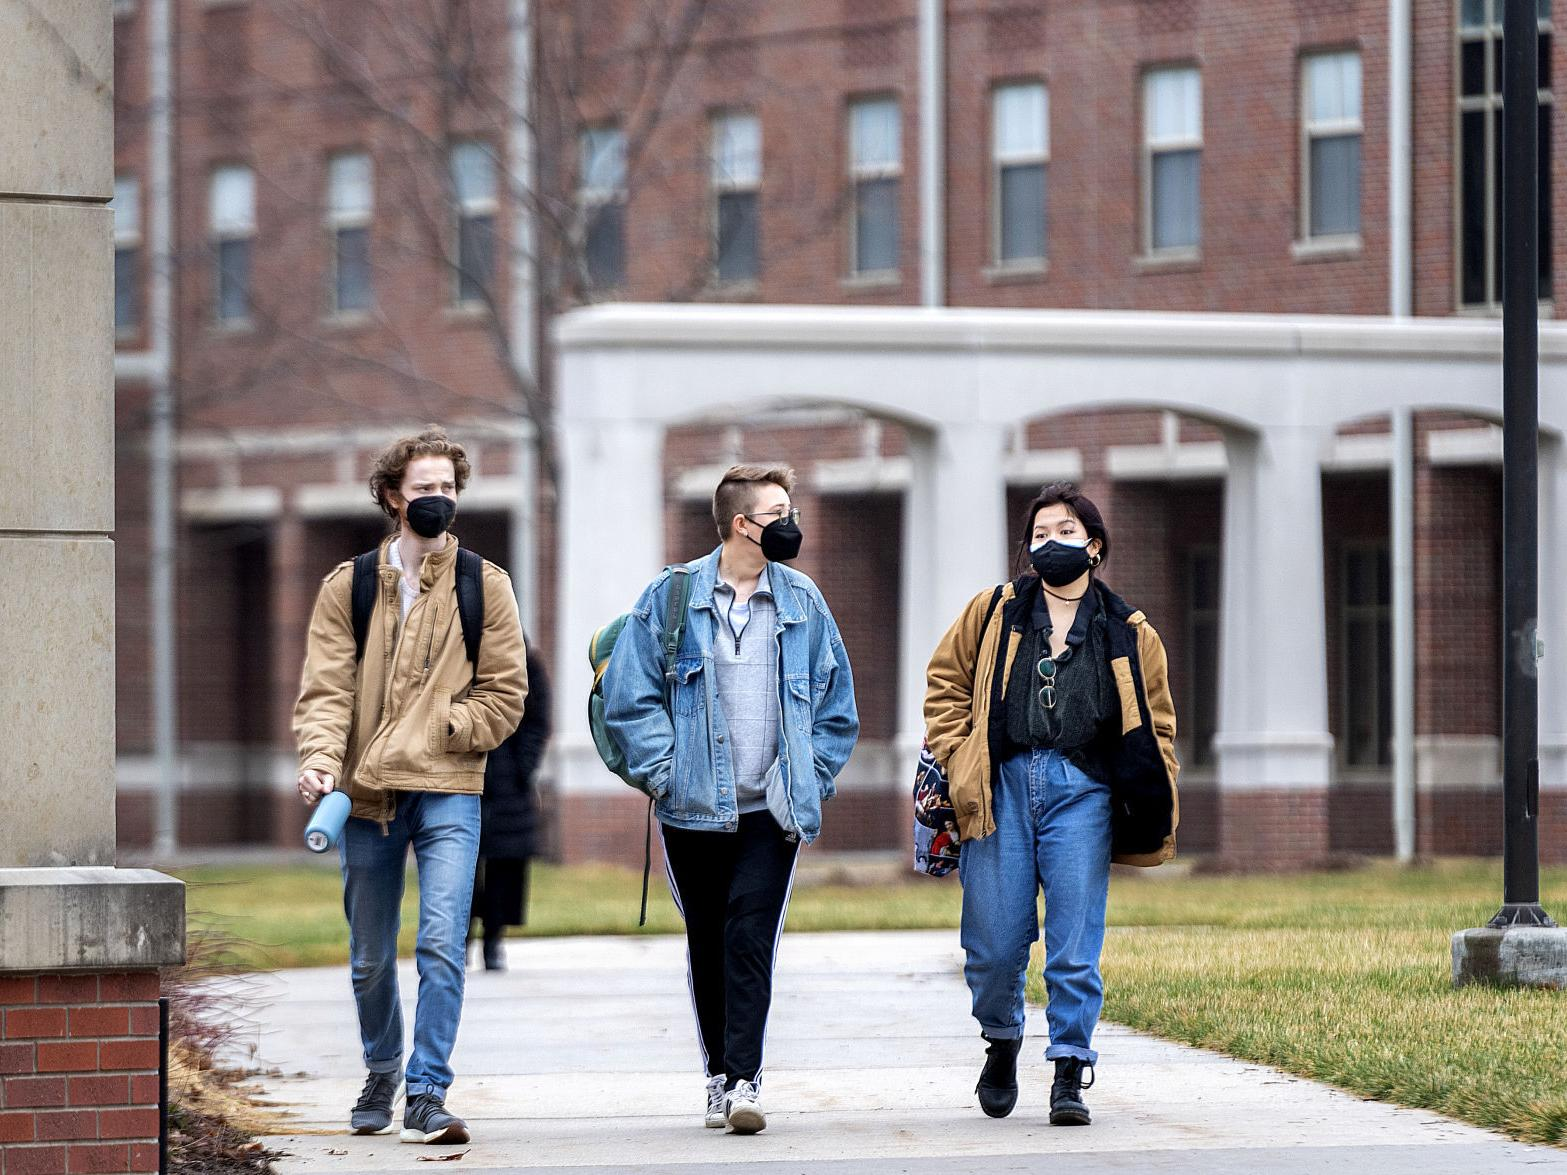 Unl Academic Calendar 2022.Unl To Offer Two Week Pre Session In January Pushing Back Spring Semester Education Journalstar Com